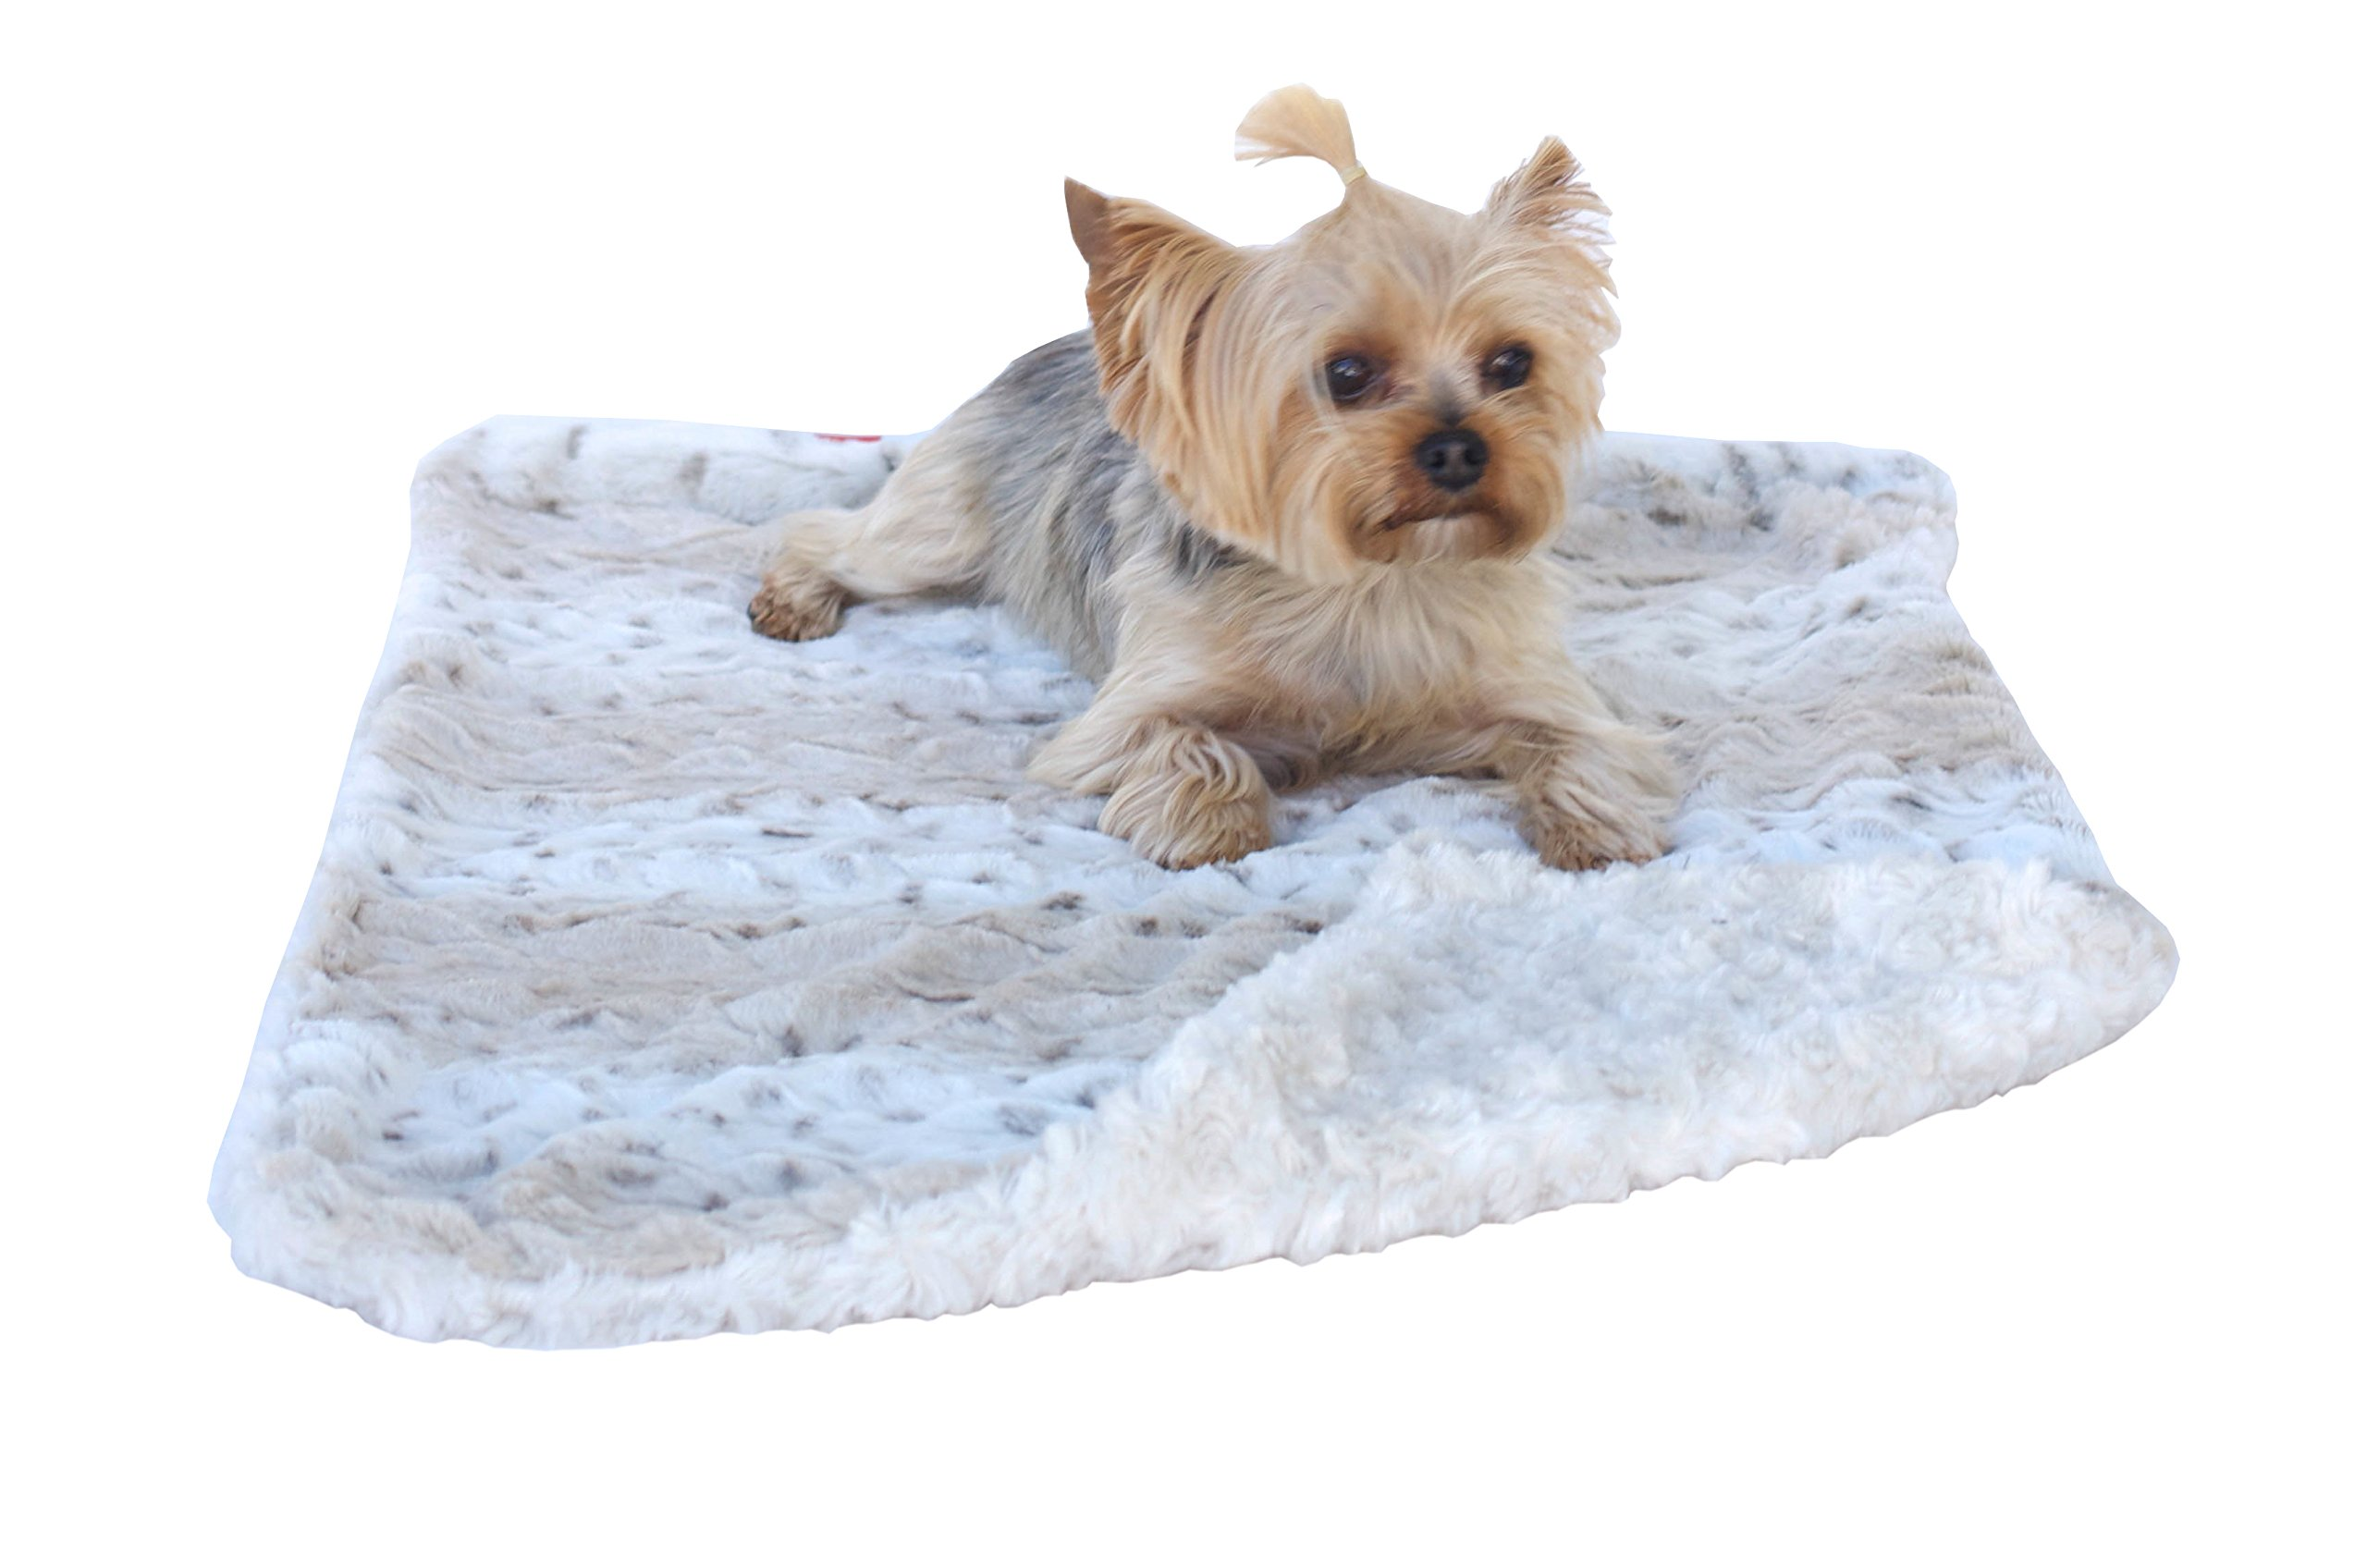 The Dog Squad Minkie Binkie Blanket Frosted Snow Leopard, 20 by 30 Square Feet